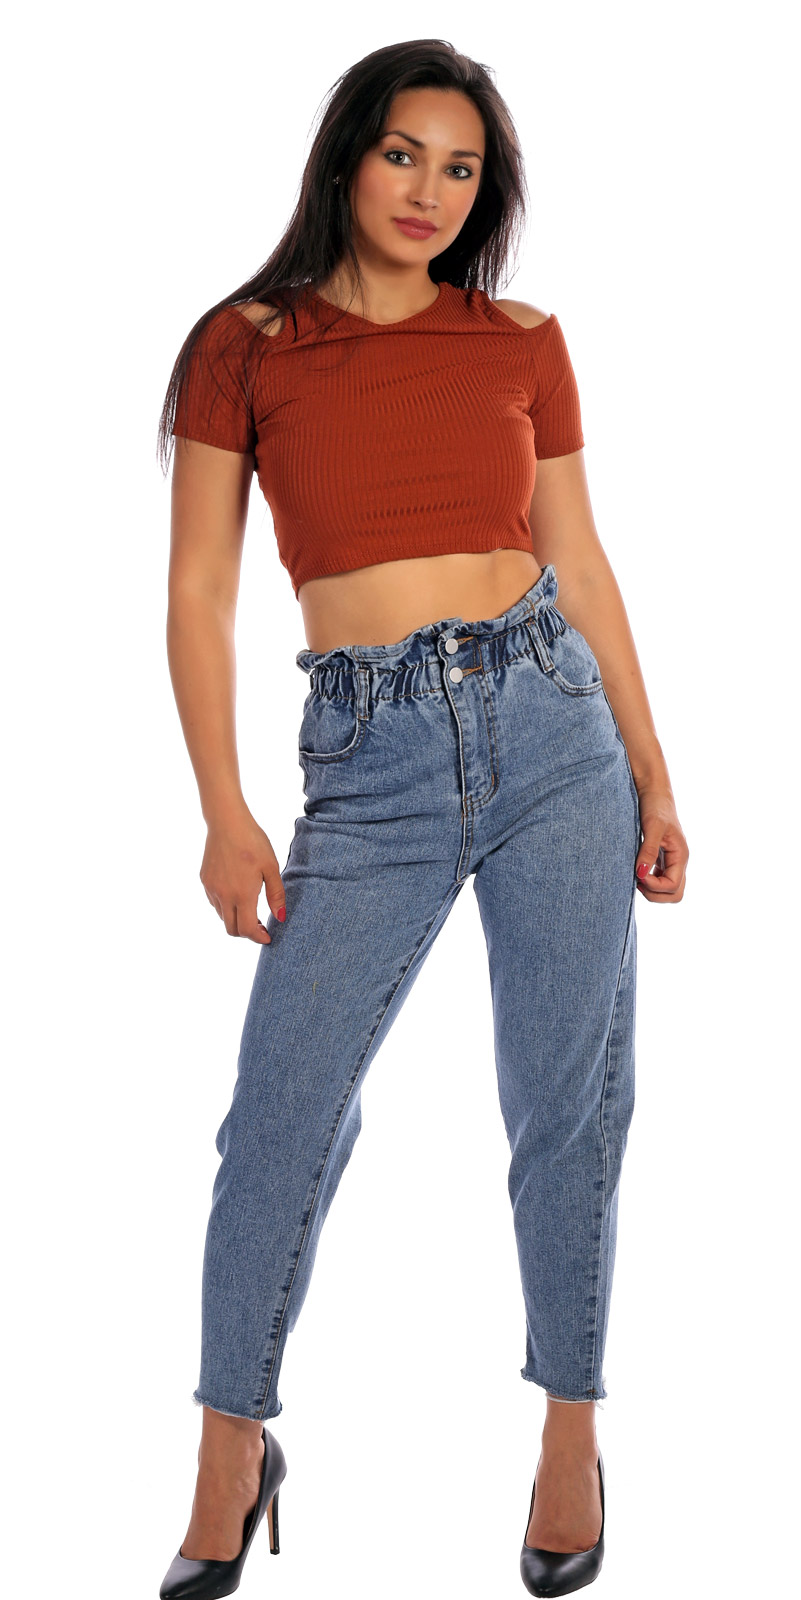 Jeans Paperbag Baggy Style Jeansblau